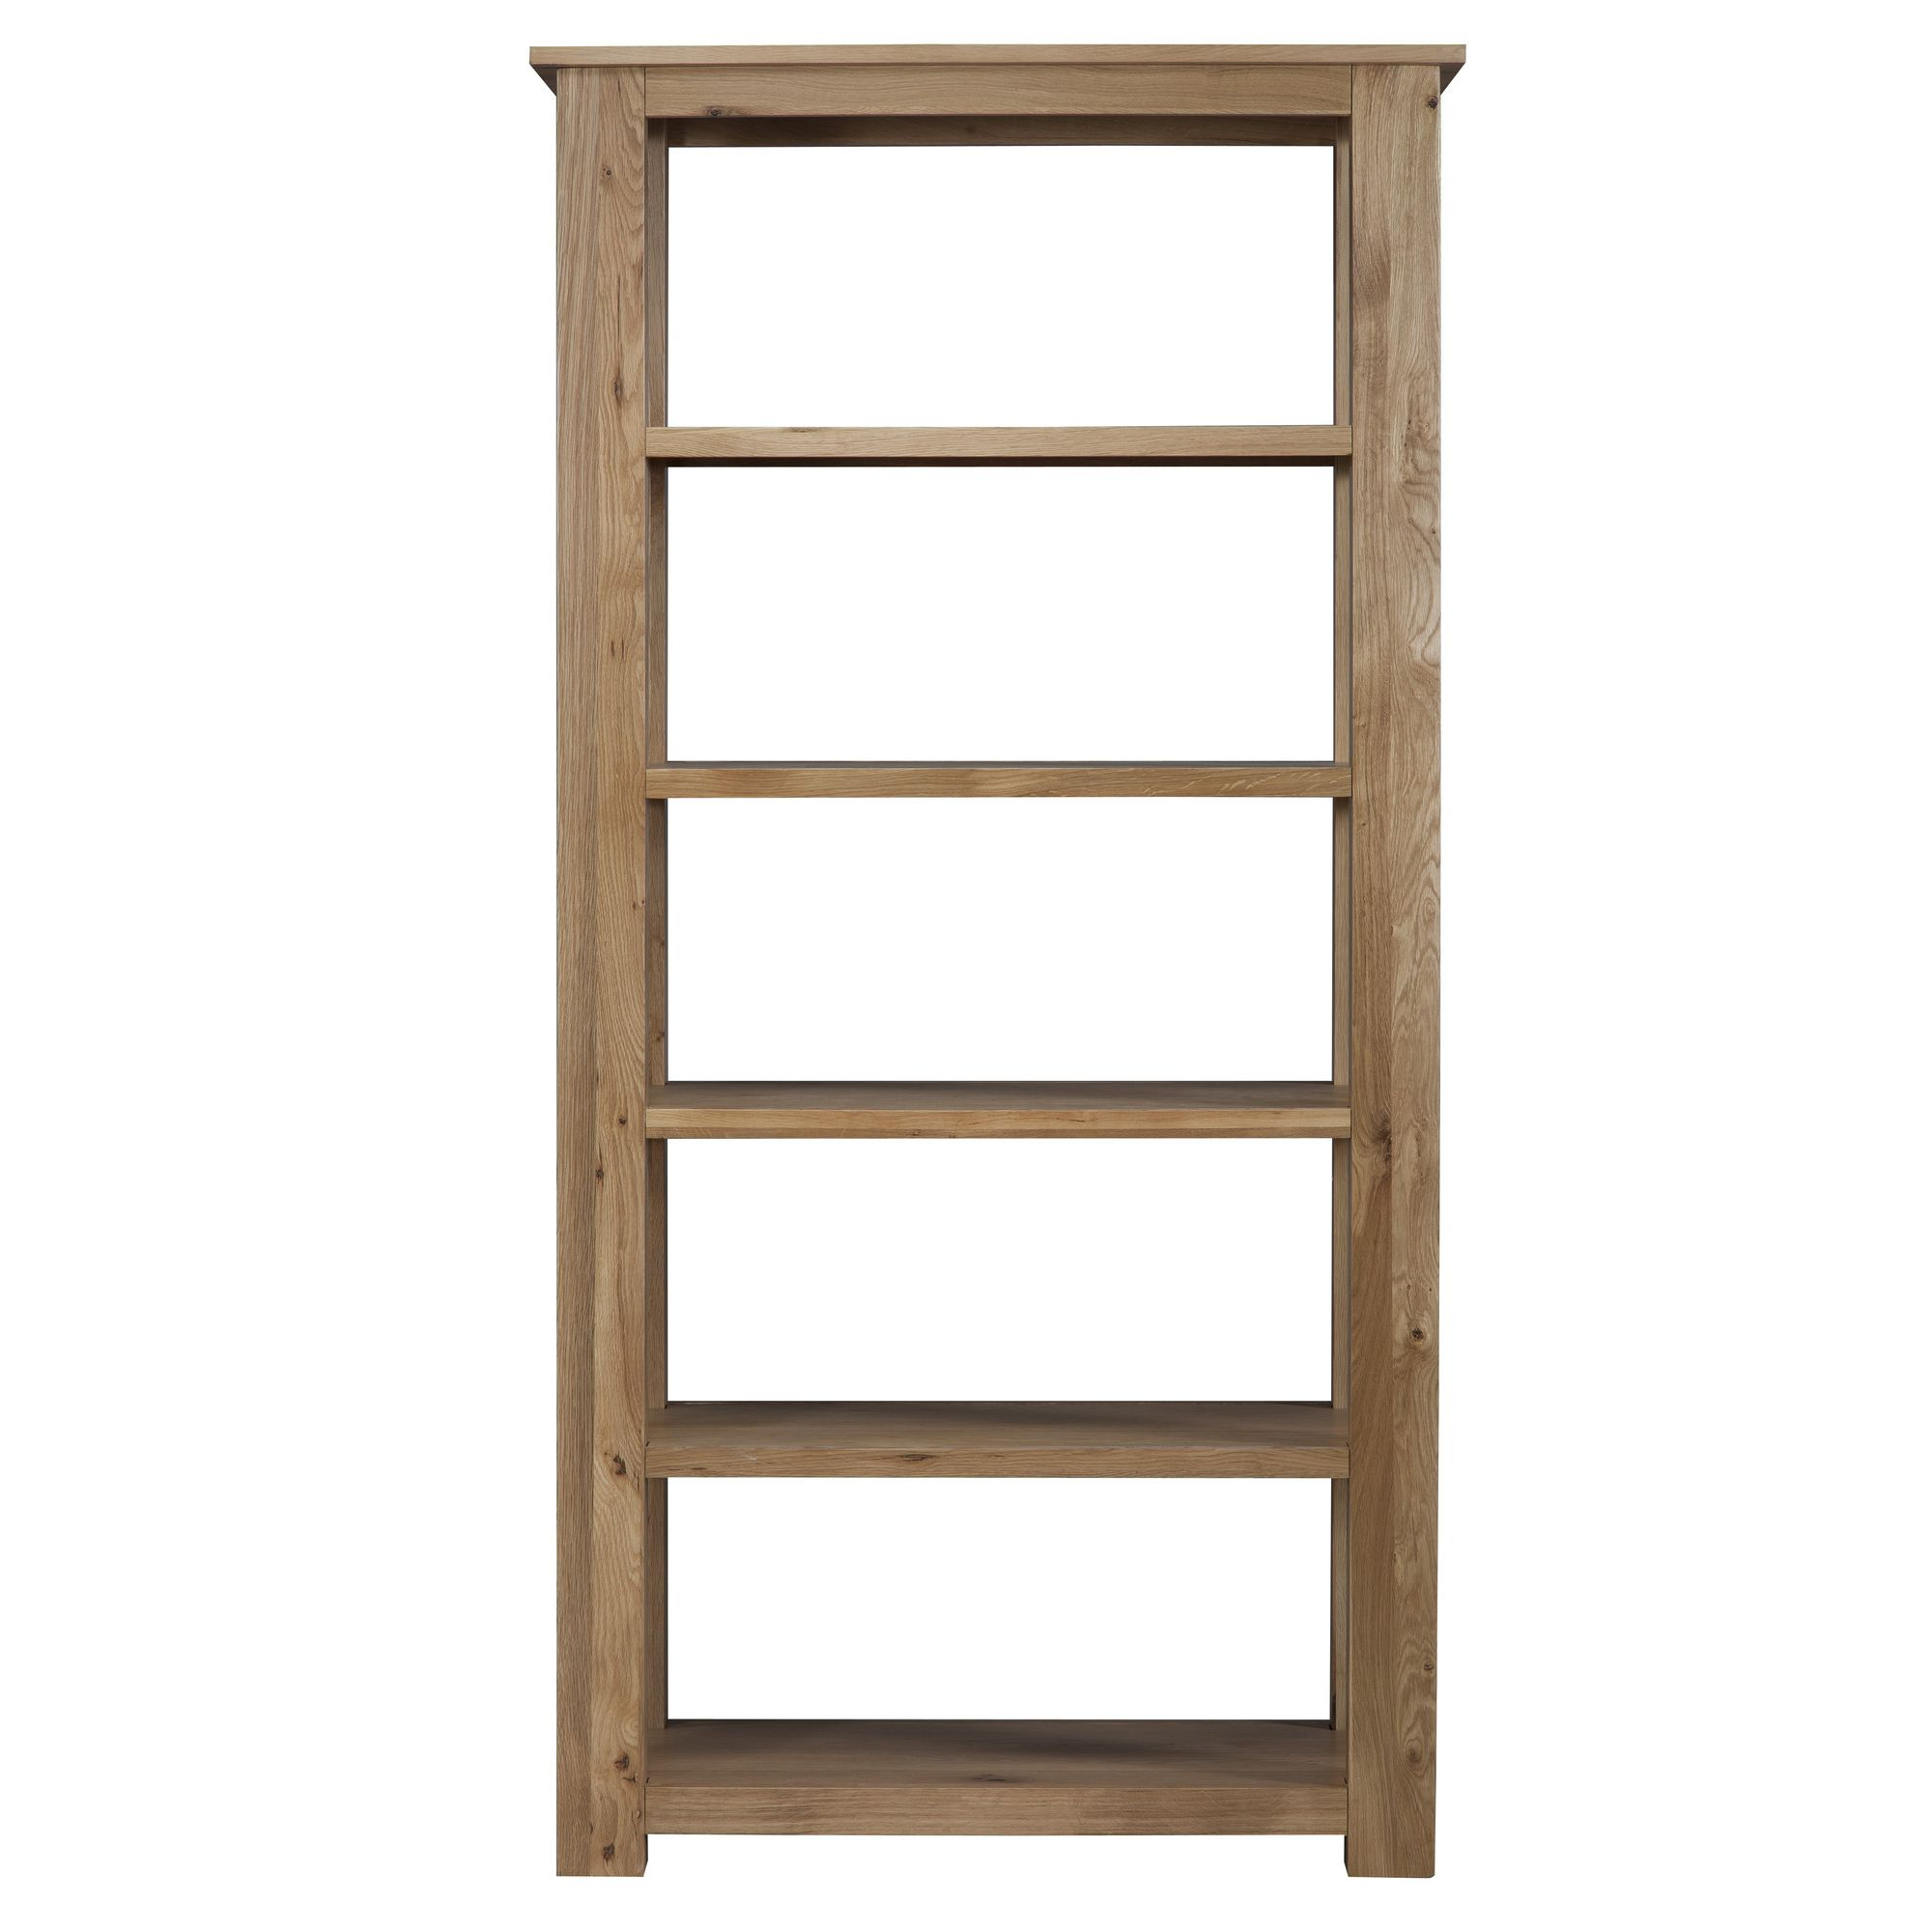 Alterton Furniture Wiltshire Bookcase at Tesco Direct